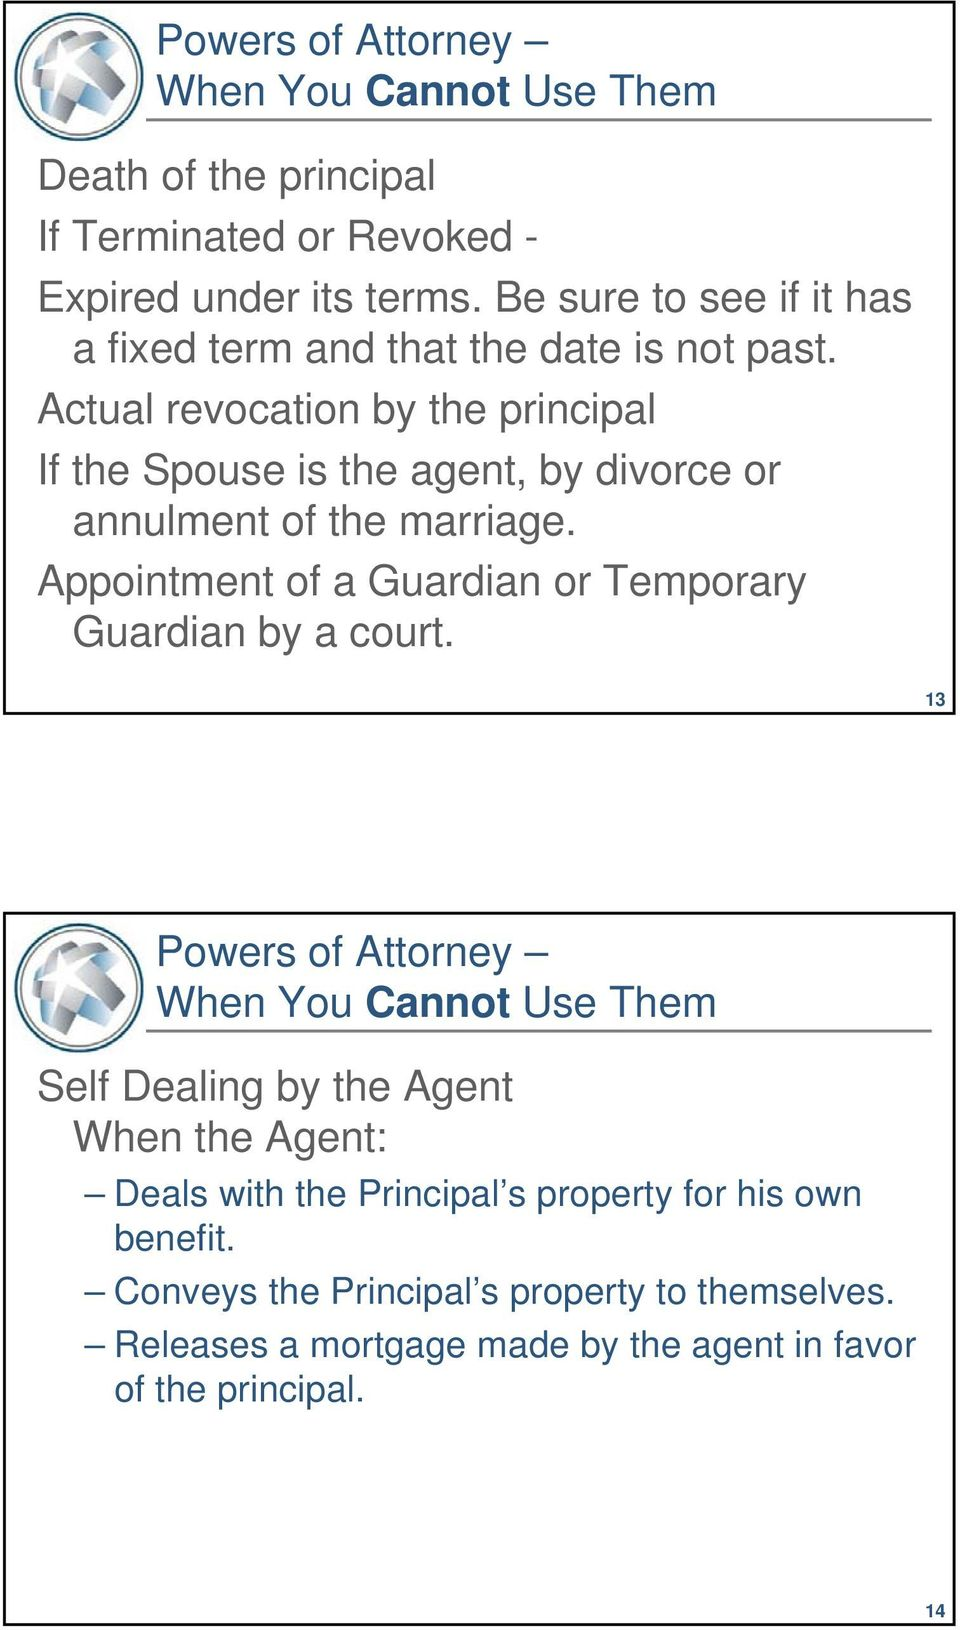 Actual revocation by the principal If the Spouse is the agent, by divorce or annulment of the marriage.